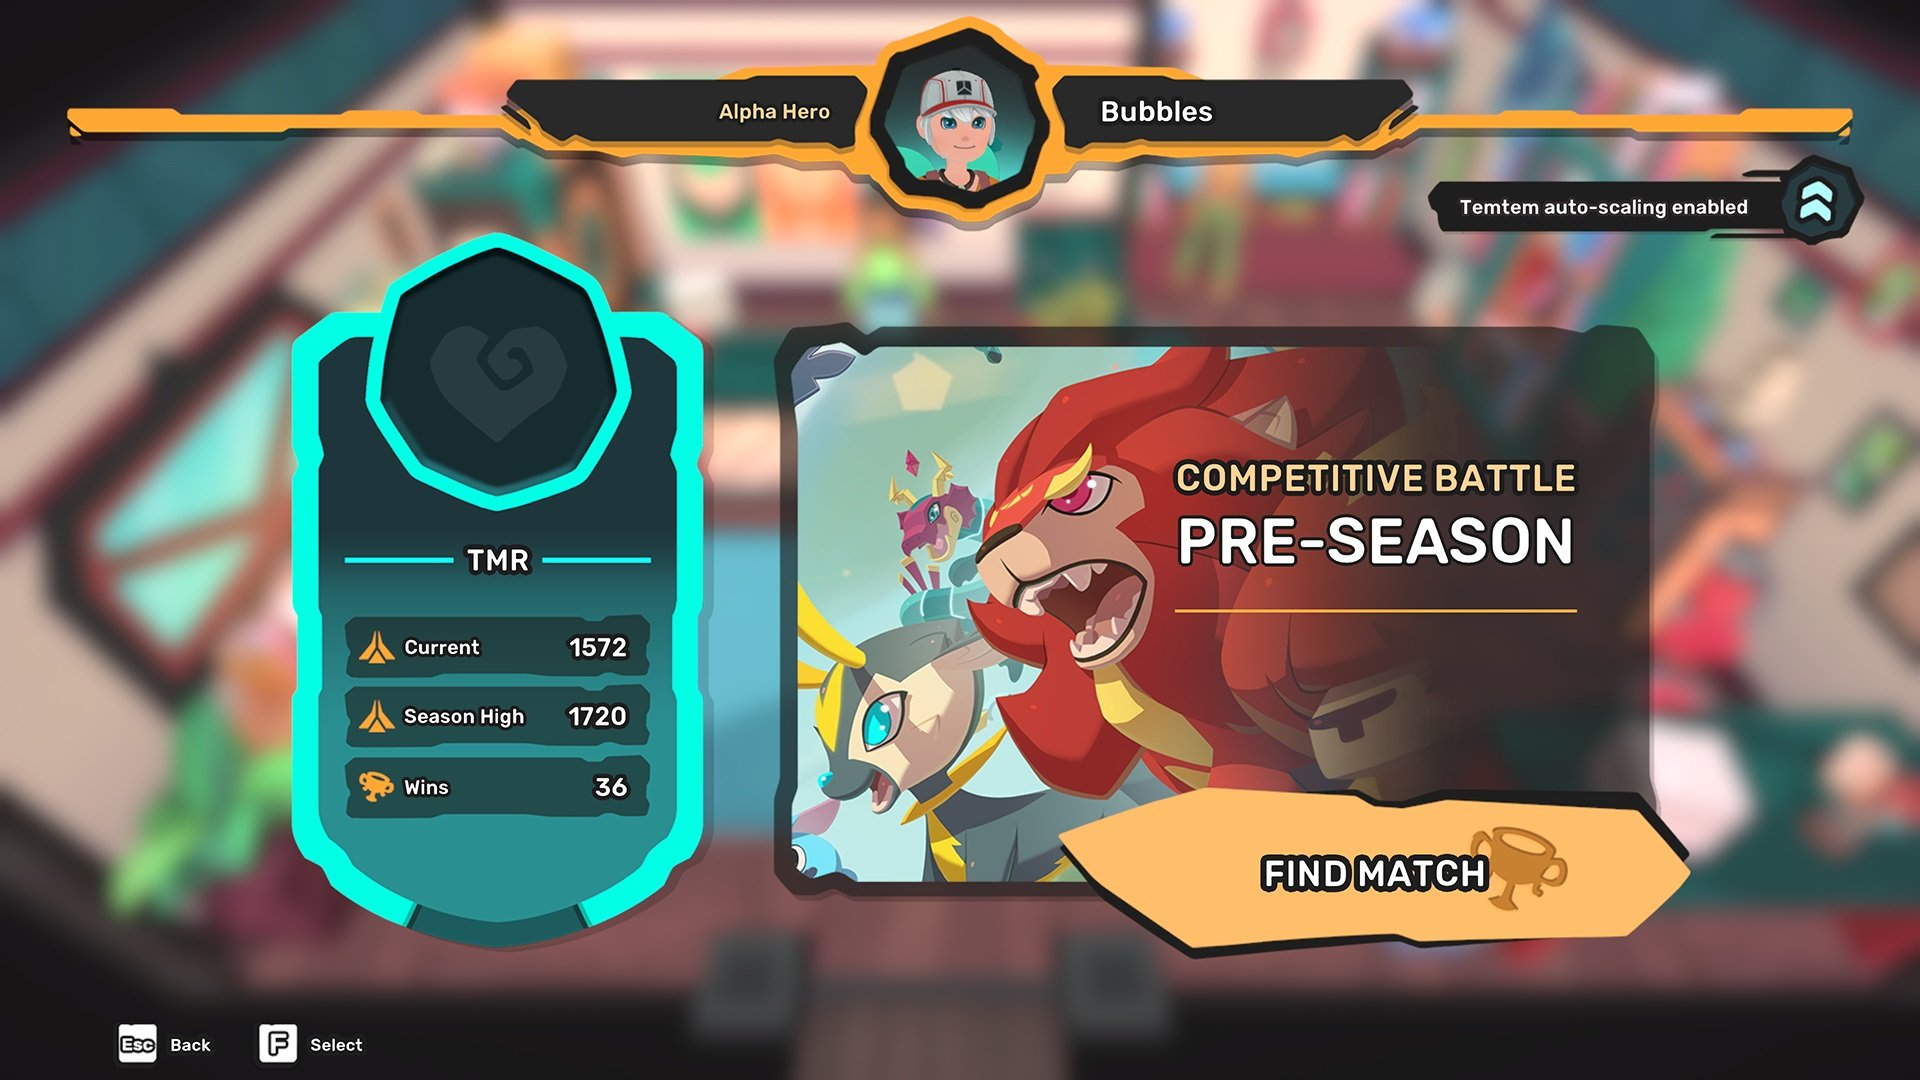 Update adds ranked matchmaking to Temtem